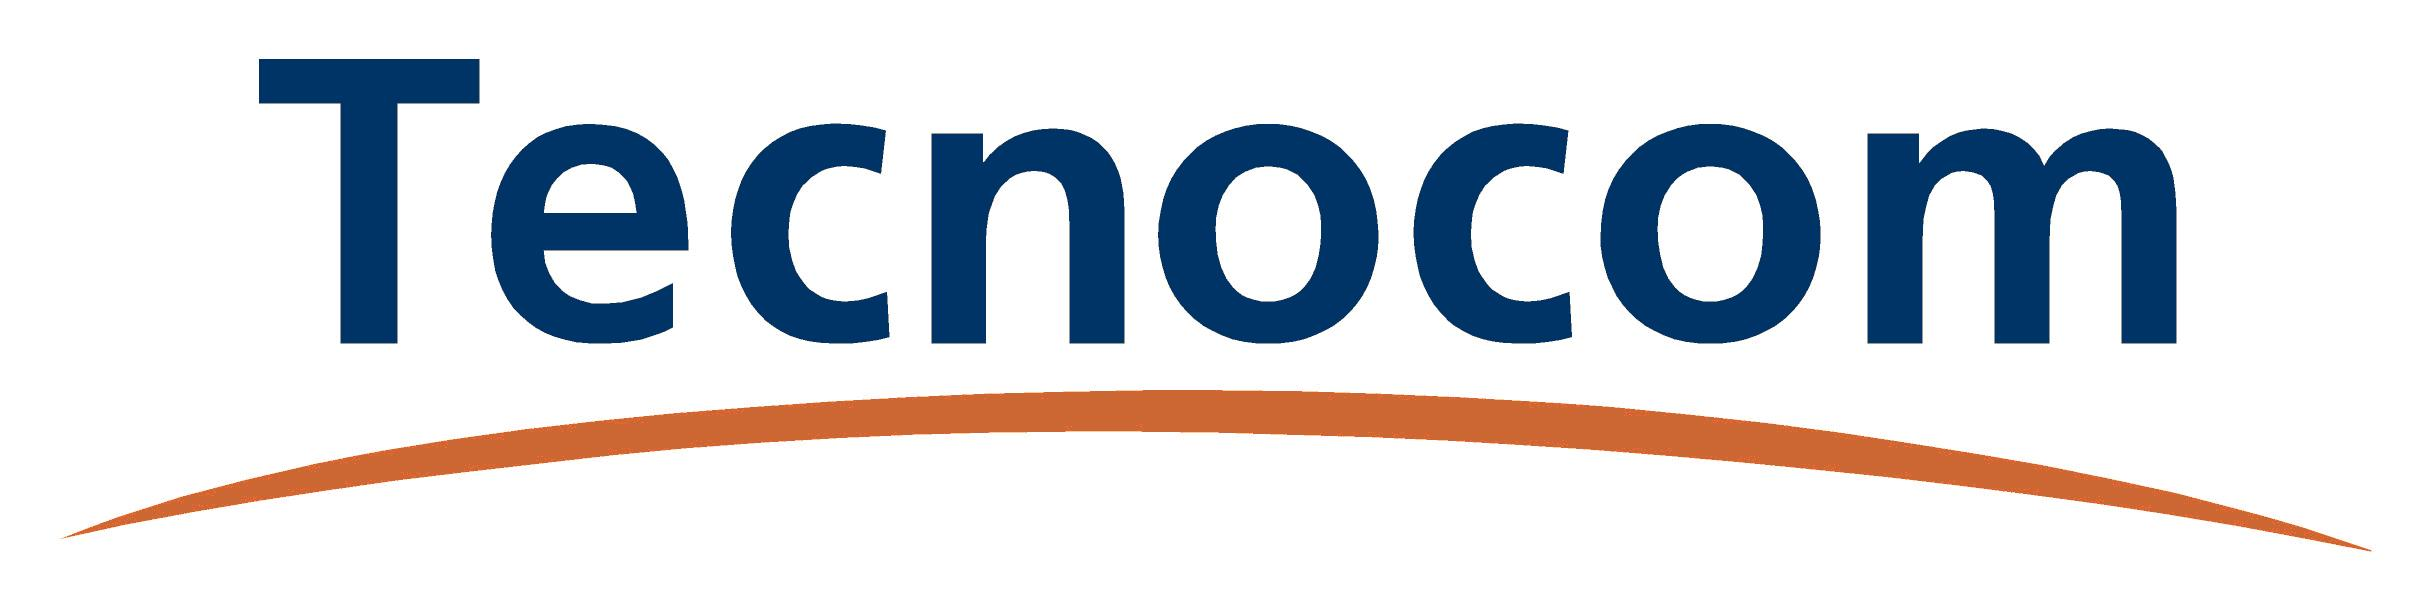 Tecnocom Logo photo - 1